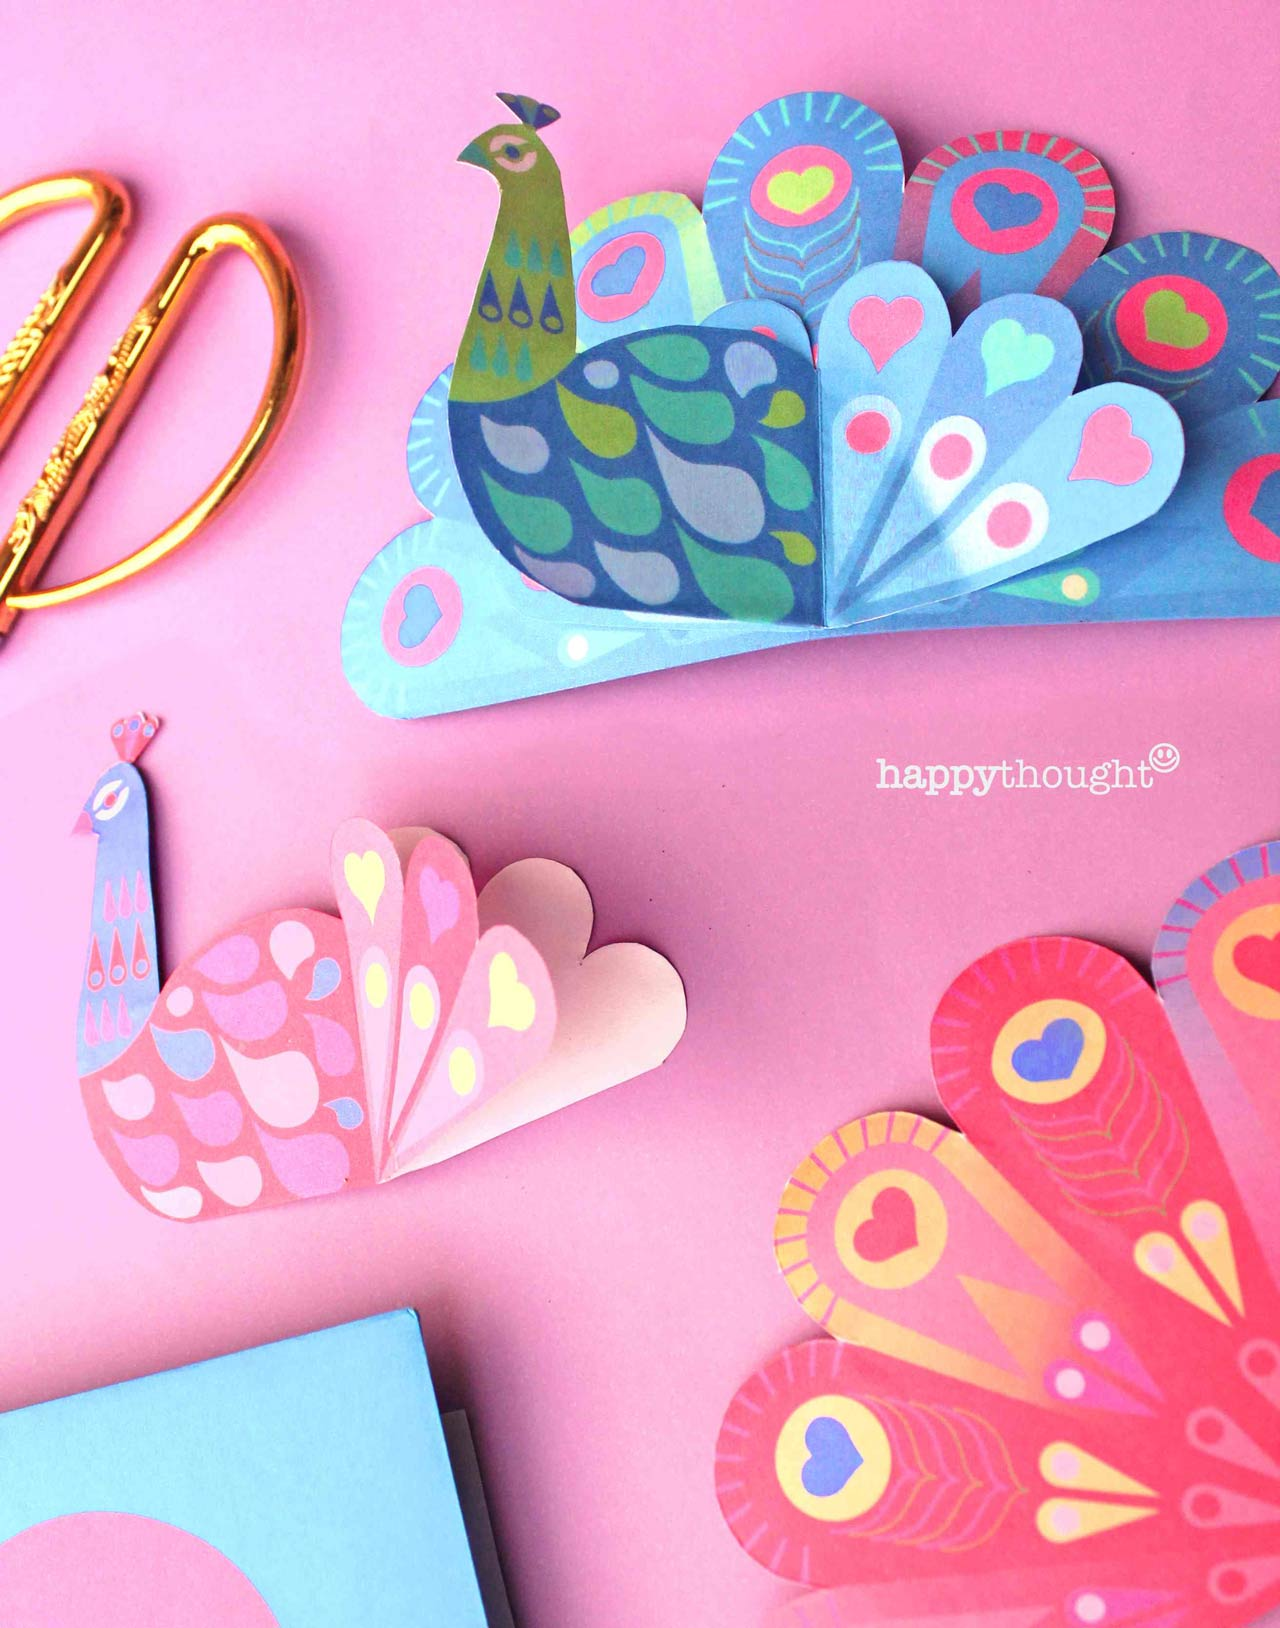 How to make a paper peacock card and envelope for St Valentine's day